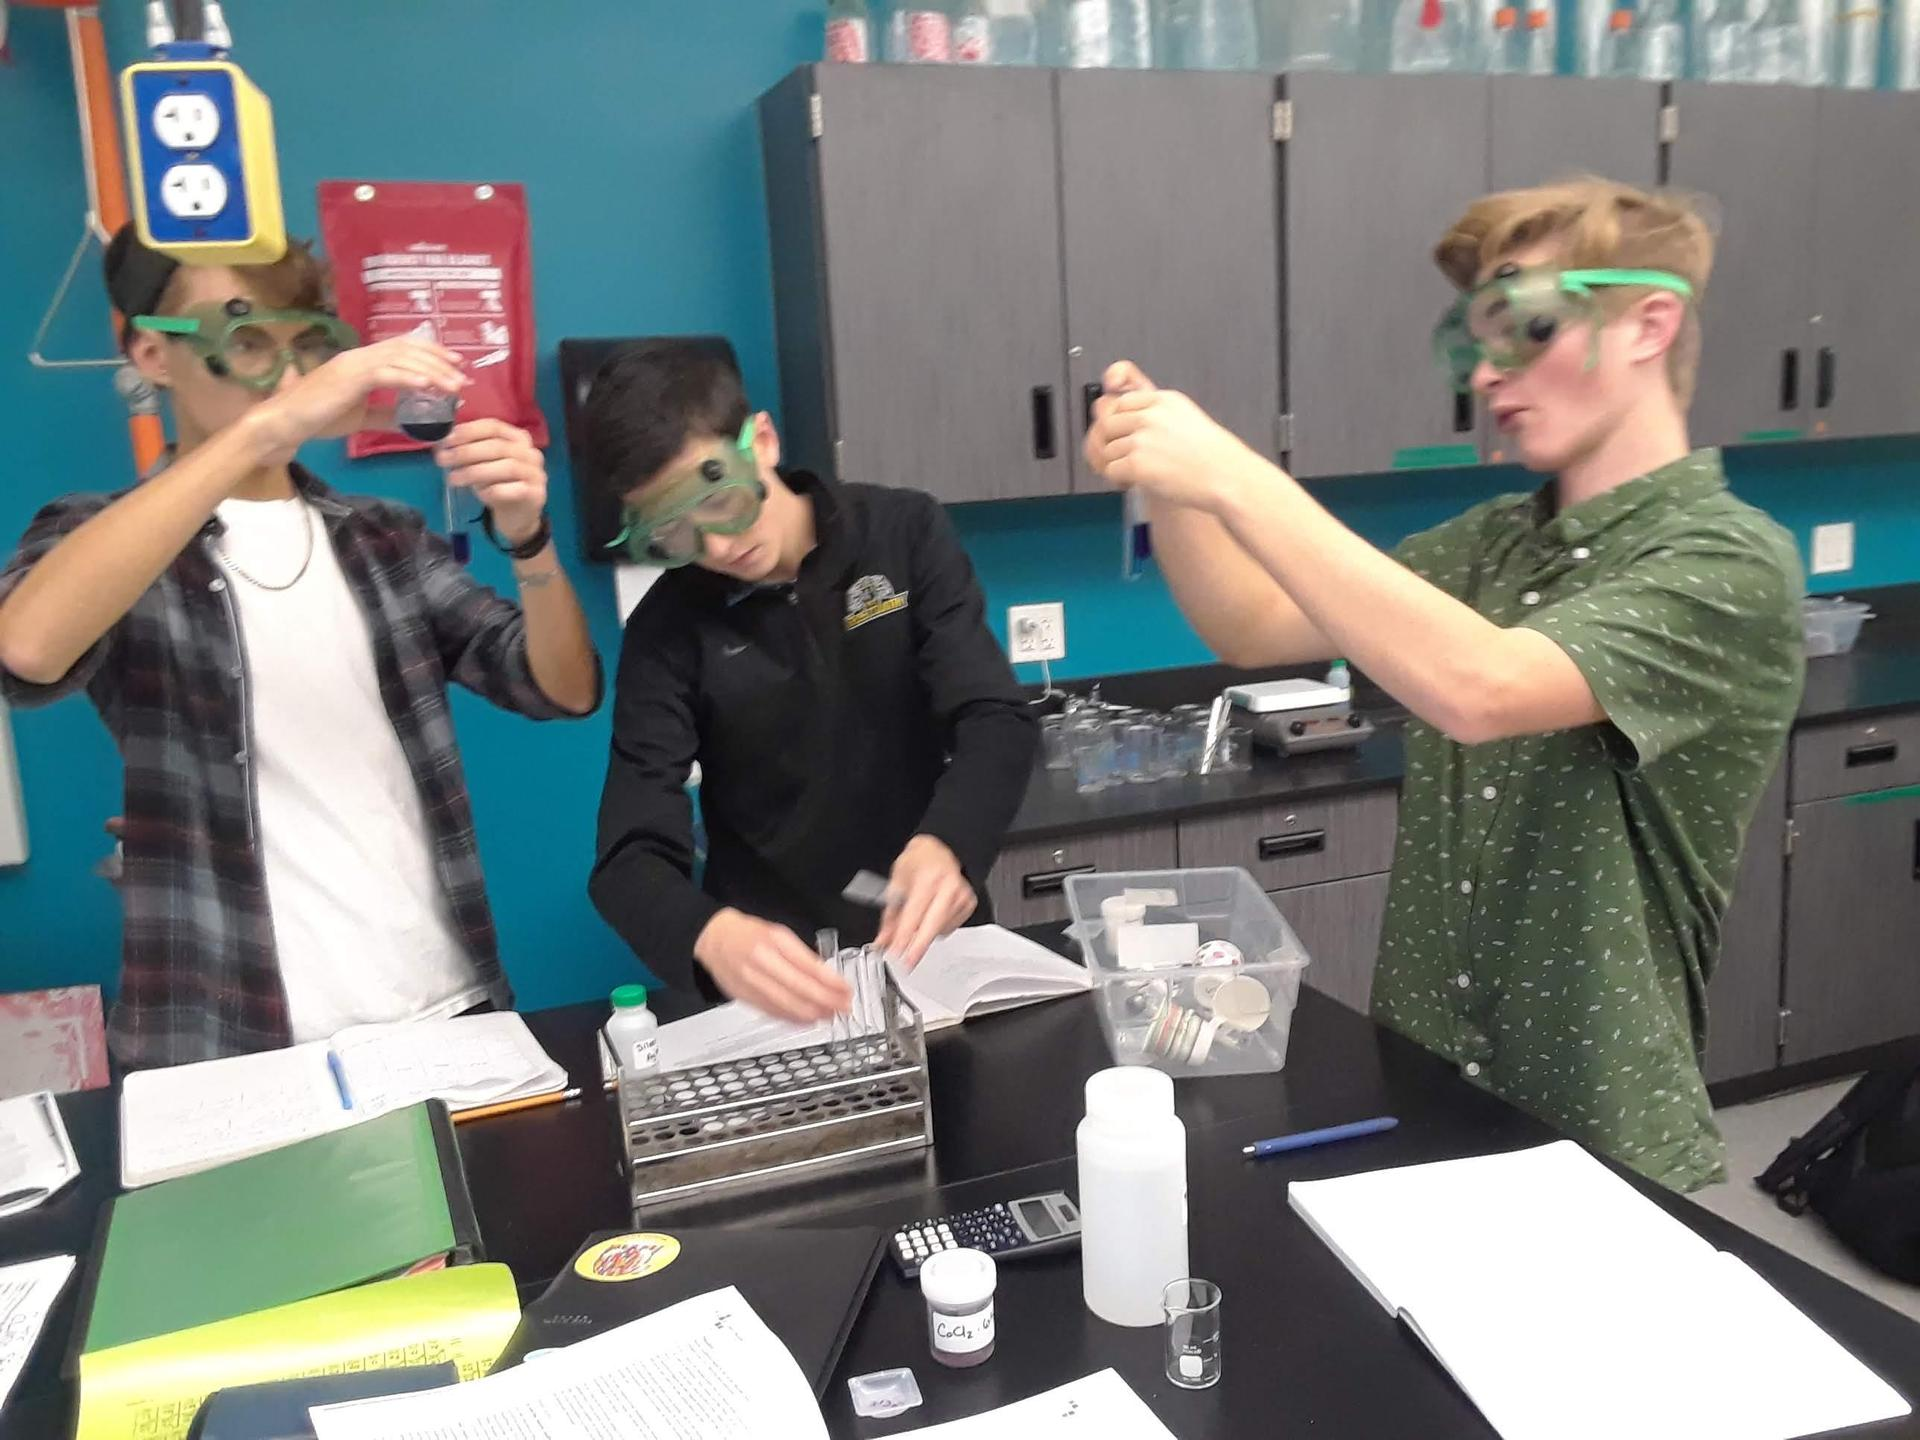 Real live chemists!